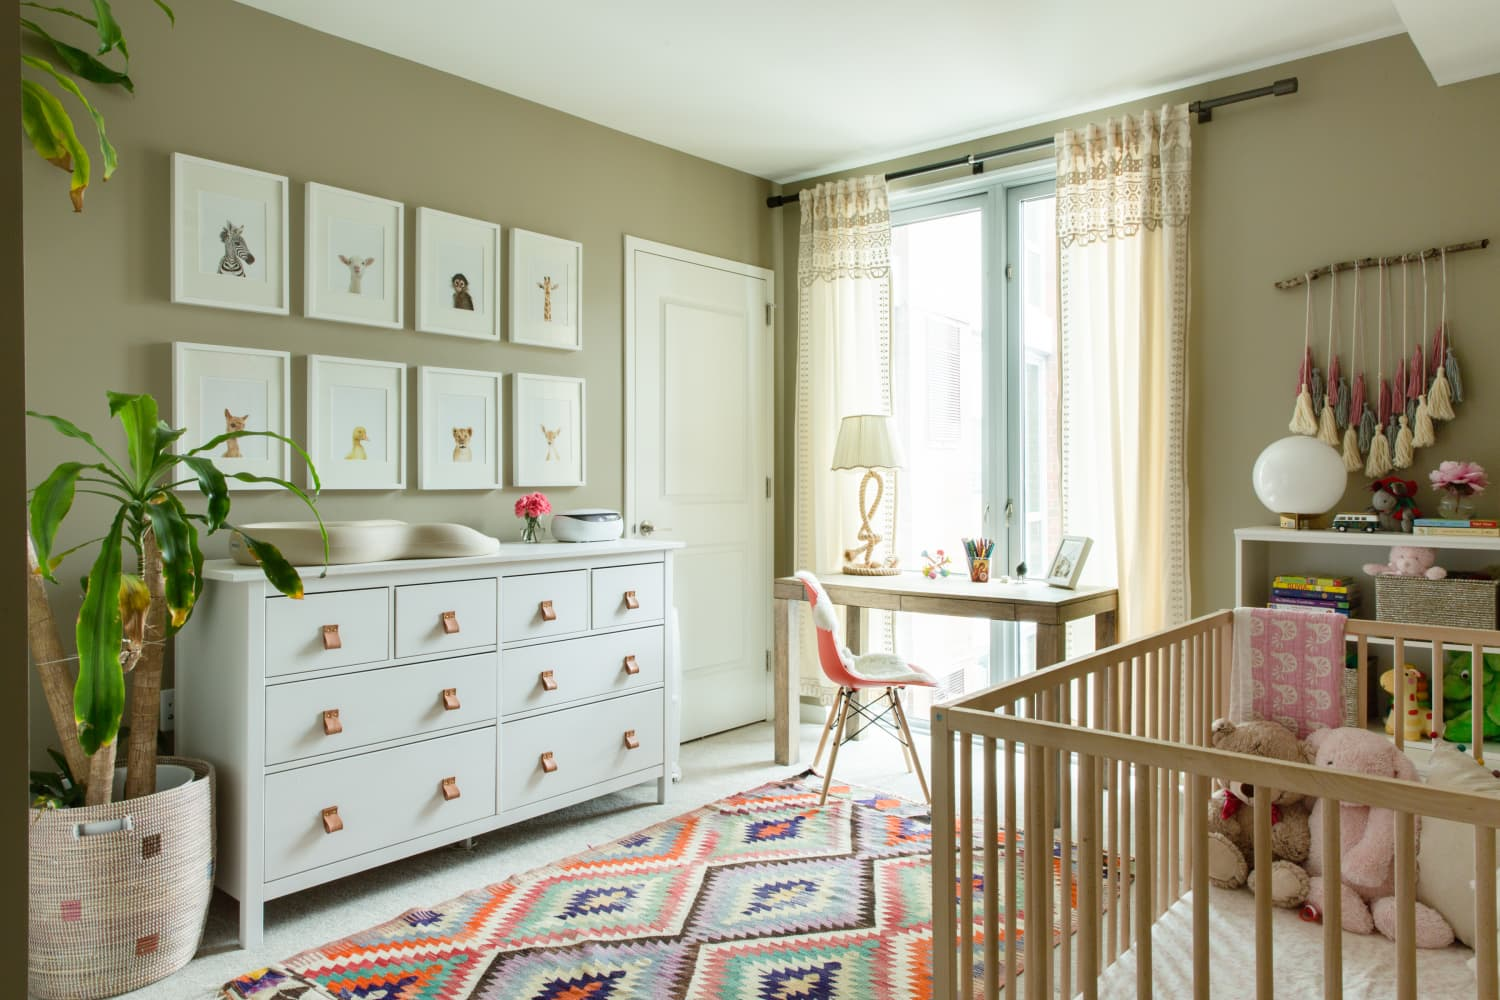 The Top 10 Places to Shop for Stylish, Kid-Friendly Rugs